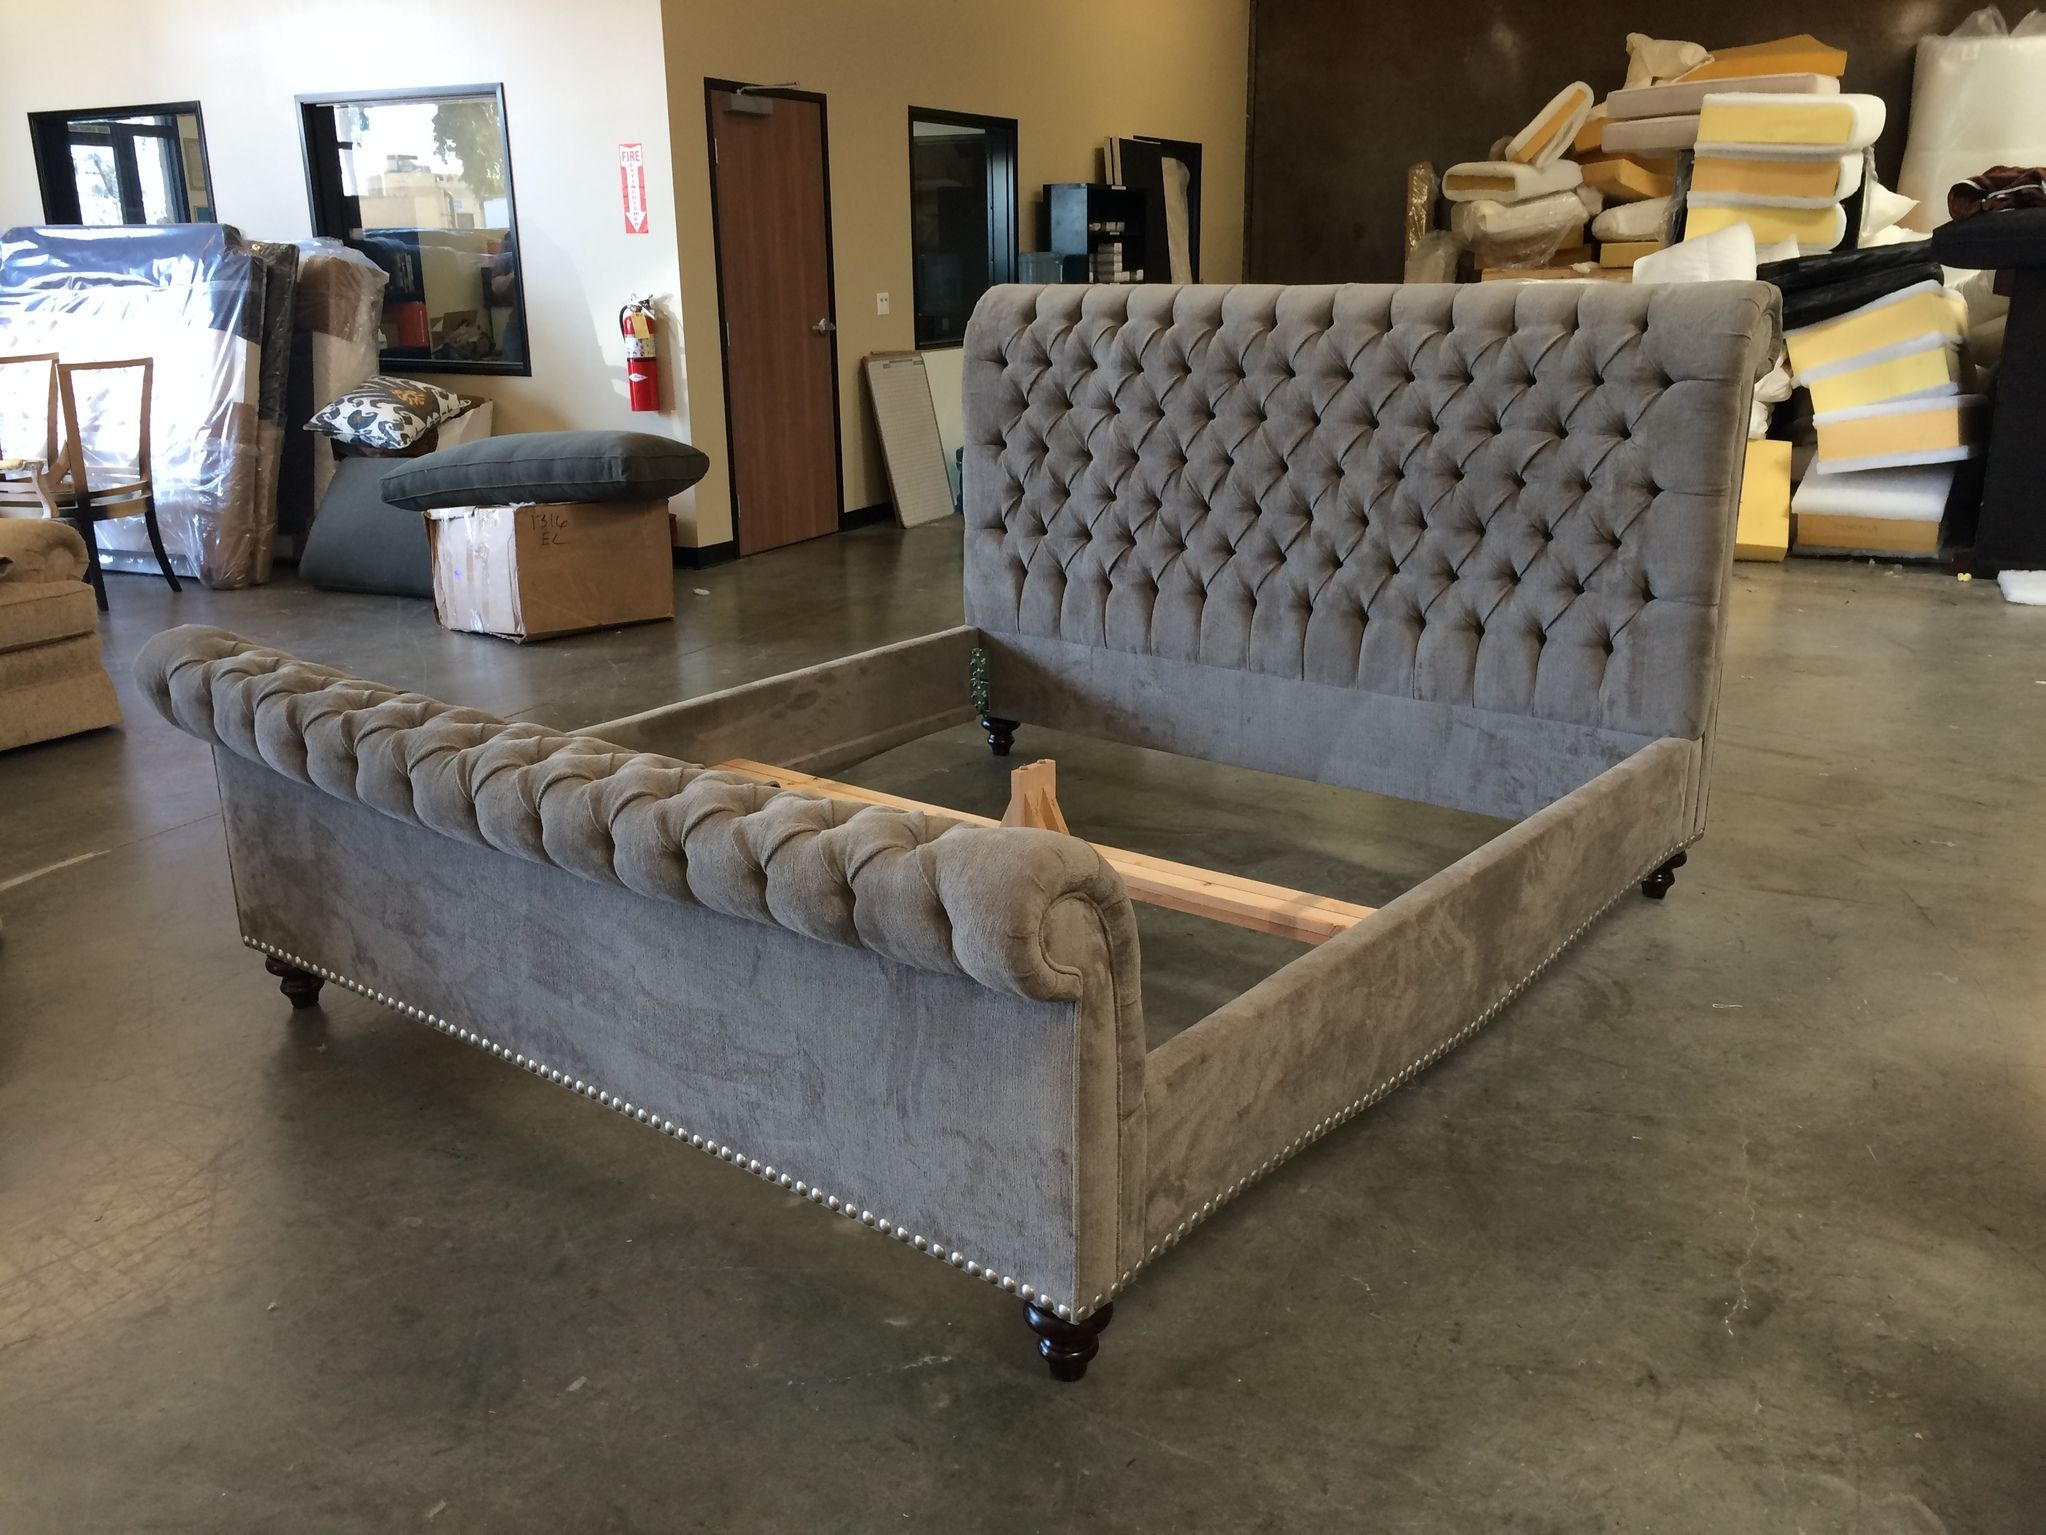 Luxury Tufted Sleigh Bed For Cozy Bedroom Furniture Ideas Tufted